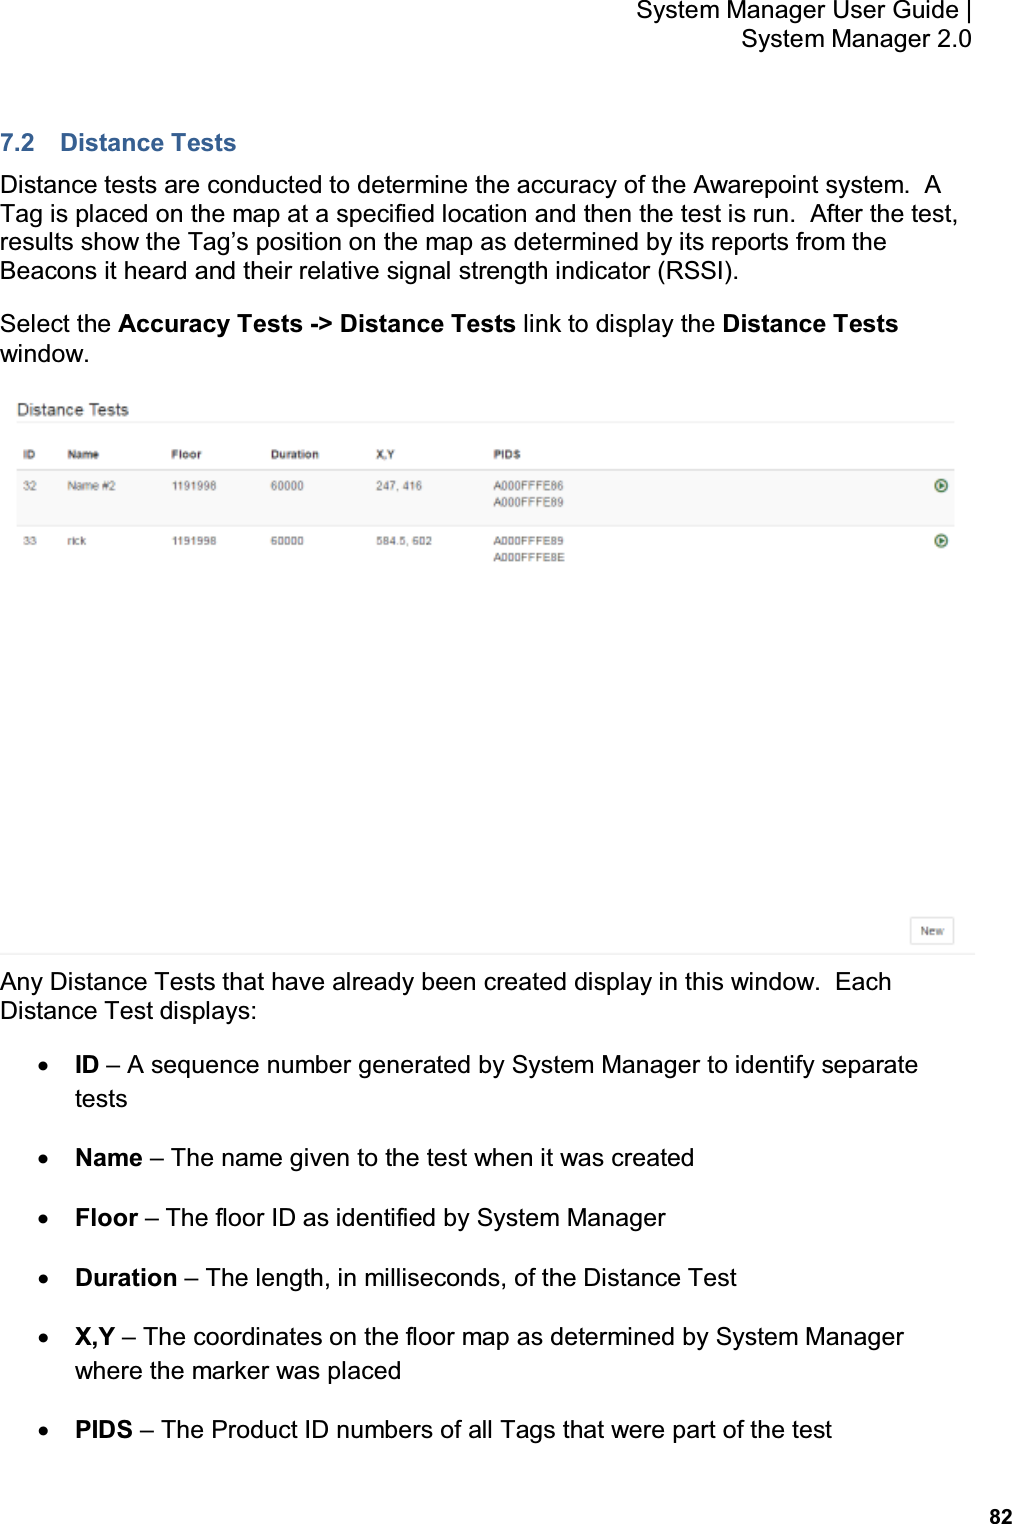 82 System Manager User Guide    System Manager 2.0 7.2  Distance Tests Distance tests are conducted to determine the accuracy of the Awarepoint system.  A Tag is placed on the map at a specified location and then the test is run.  After the test, results show the Tag's position on the map as determined by its reports from the Beacons it heard and their relative signal strength indicator (RSSI). Select the Accuracy Tests -> Distance Tests link to display the Distance Tests window.  Any Distance Tests that have already been created display in this window.  Each Distance Test displays: • ID – A sequence number generated by System Manager to identify separate tests • Name – The name given to the test when it was created • Floor – The floor ID as identified by System Manager • Duration – The length, in milliseconds, of the Distance Test • X,Y – The coordinates on the floor map as determined by System Manager where the marker was placed • PIDS – The Product ID numbers of all Tags that were part of the test